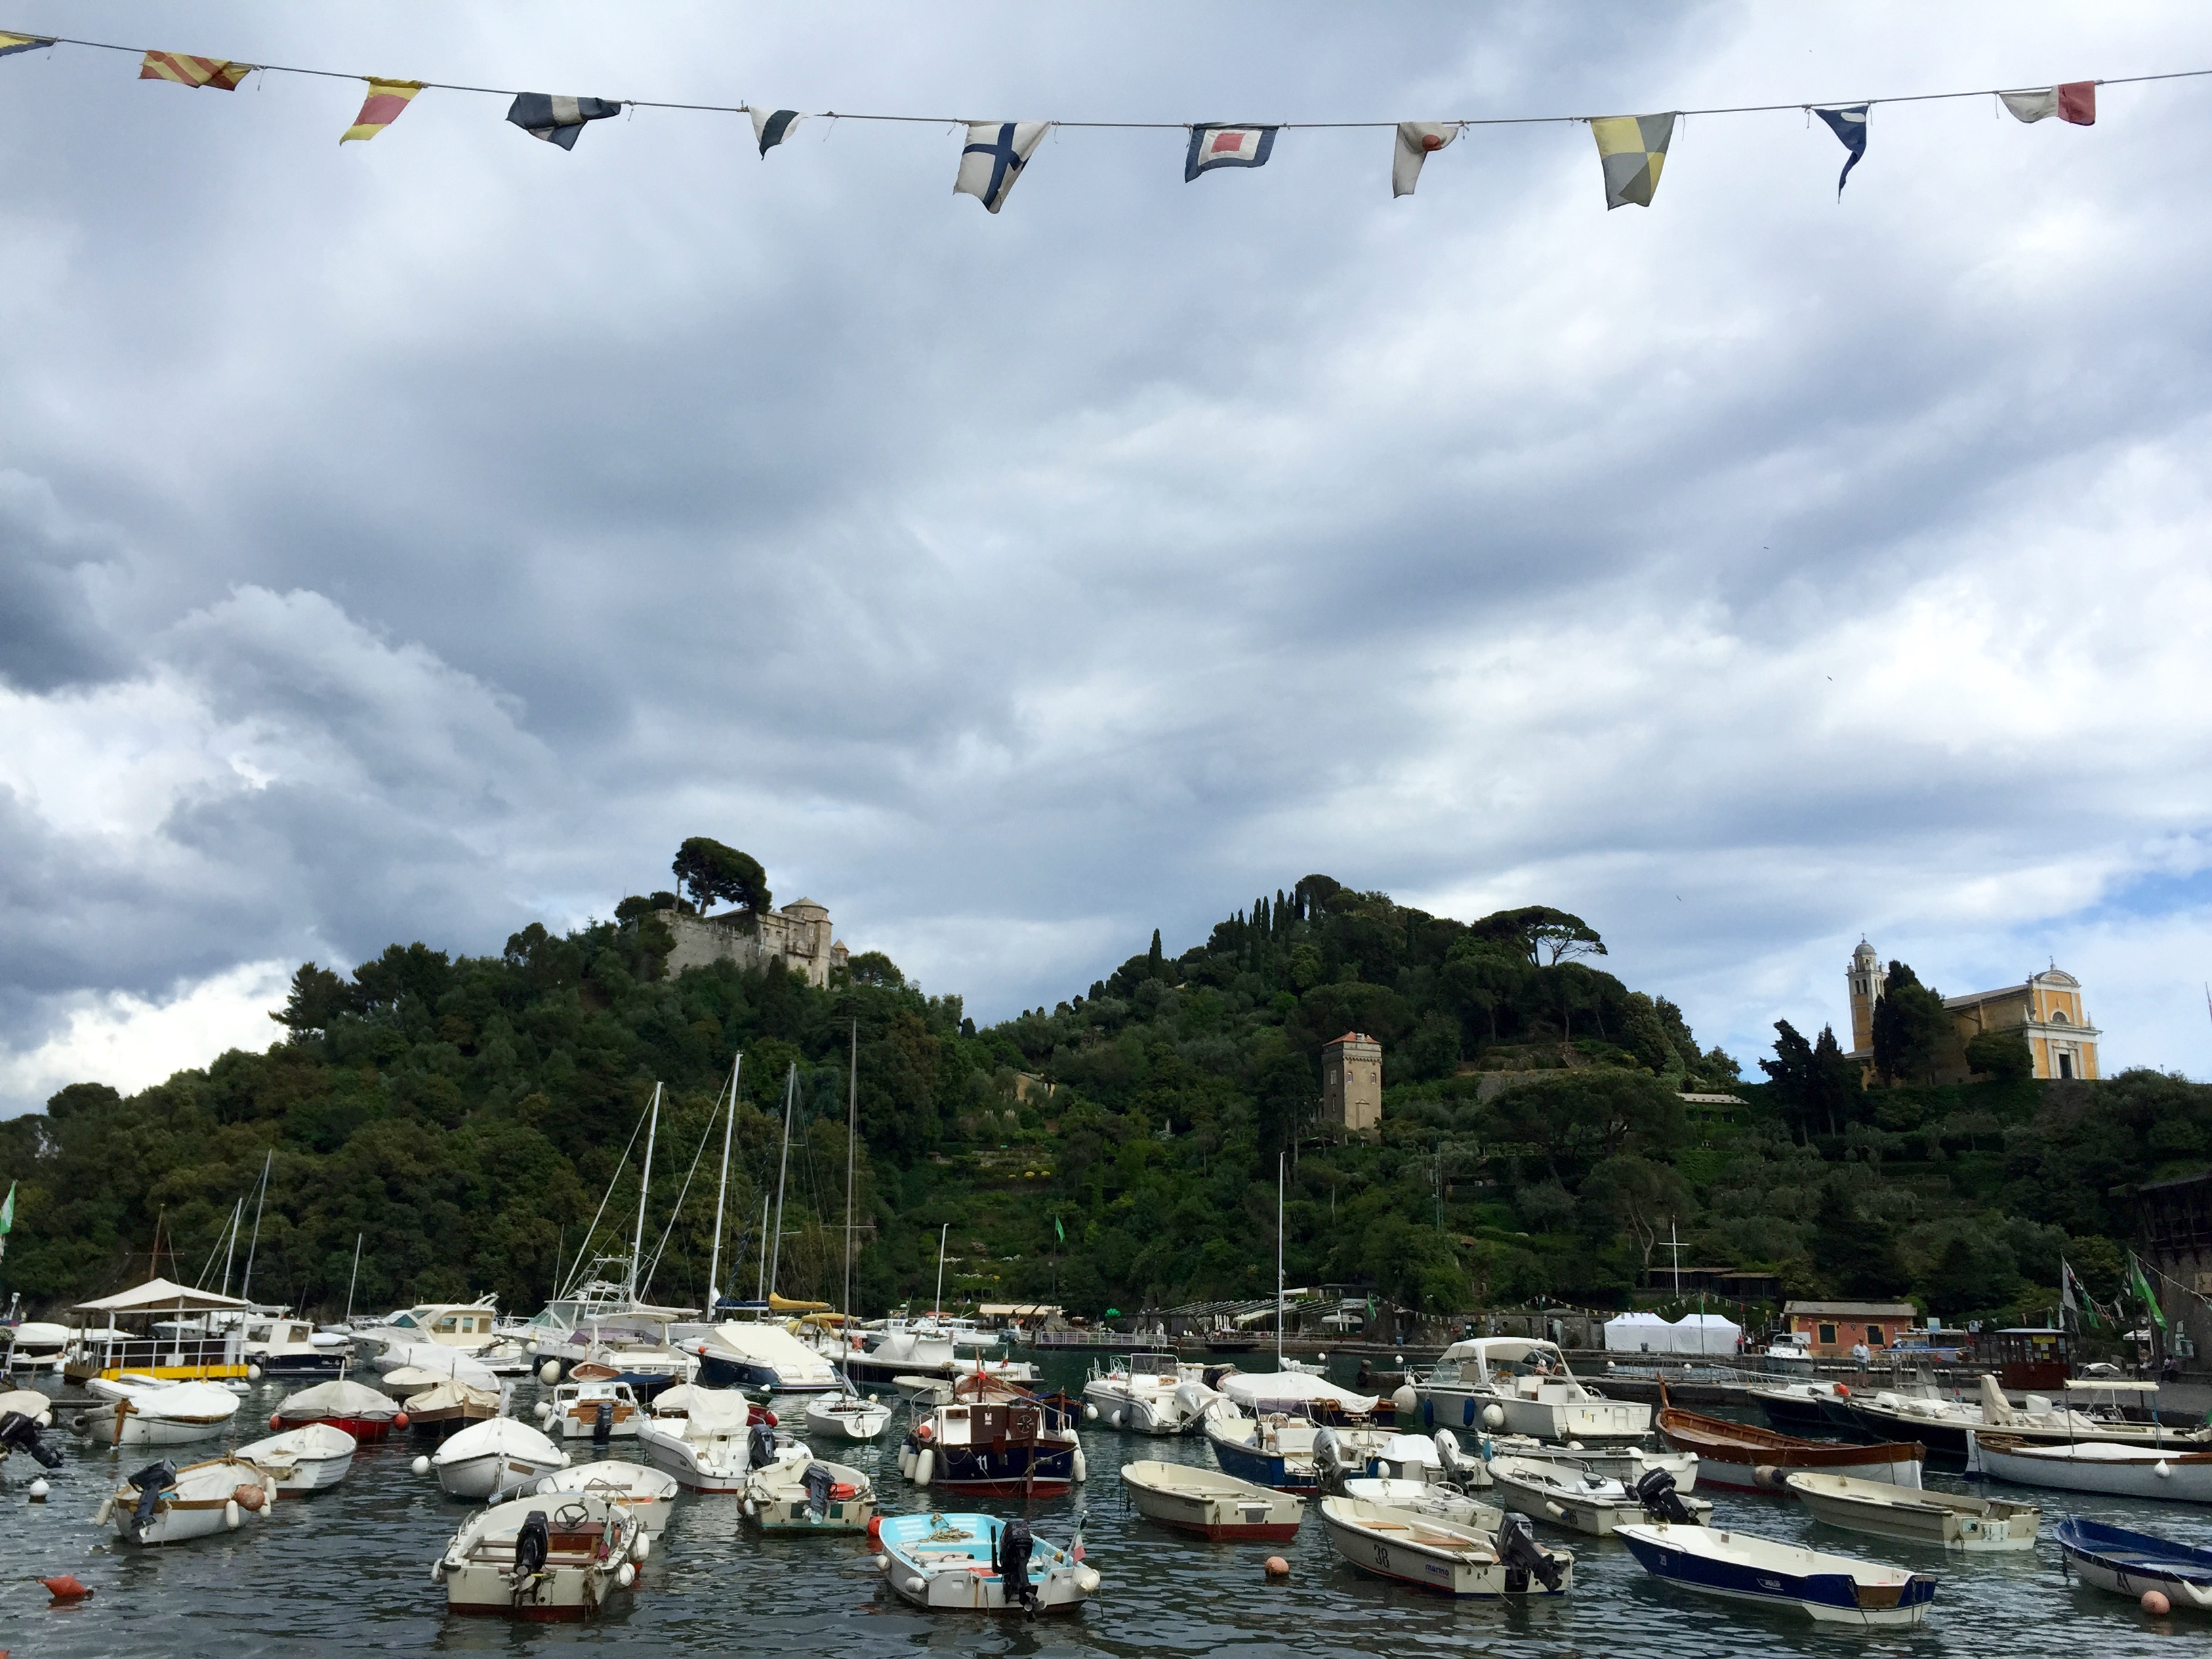 Road Trip through Portofino & Santa Margherita Ligure, Italy - Kaptain Kenny Travel